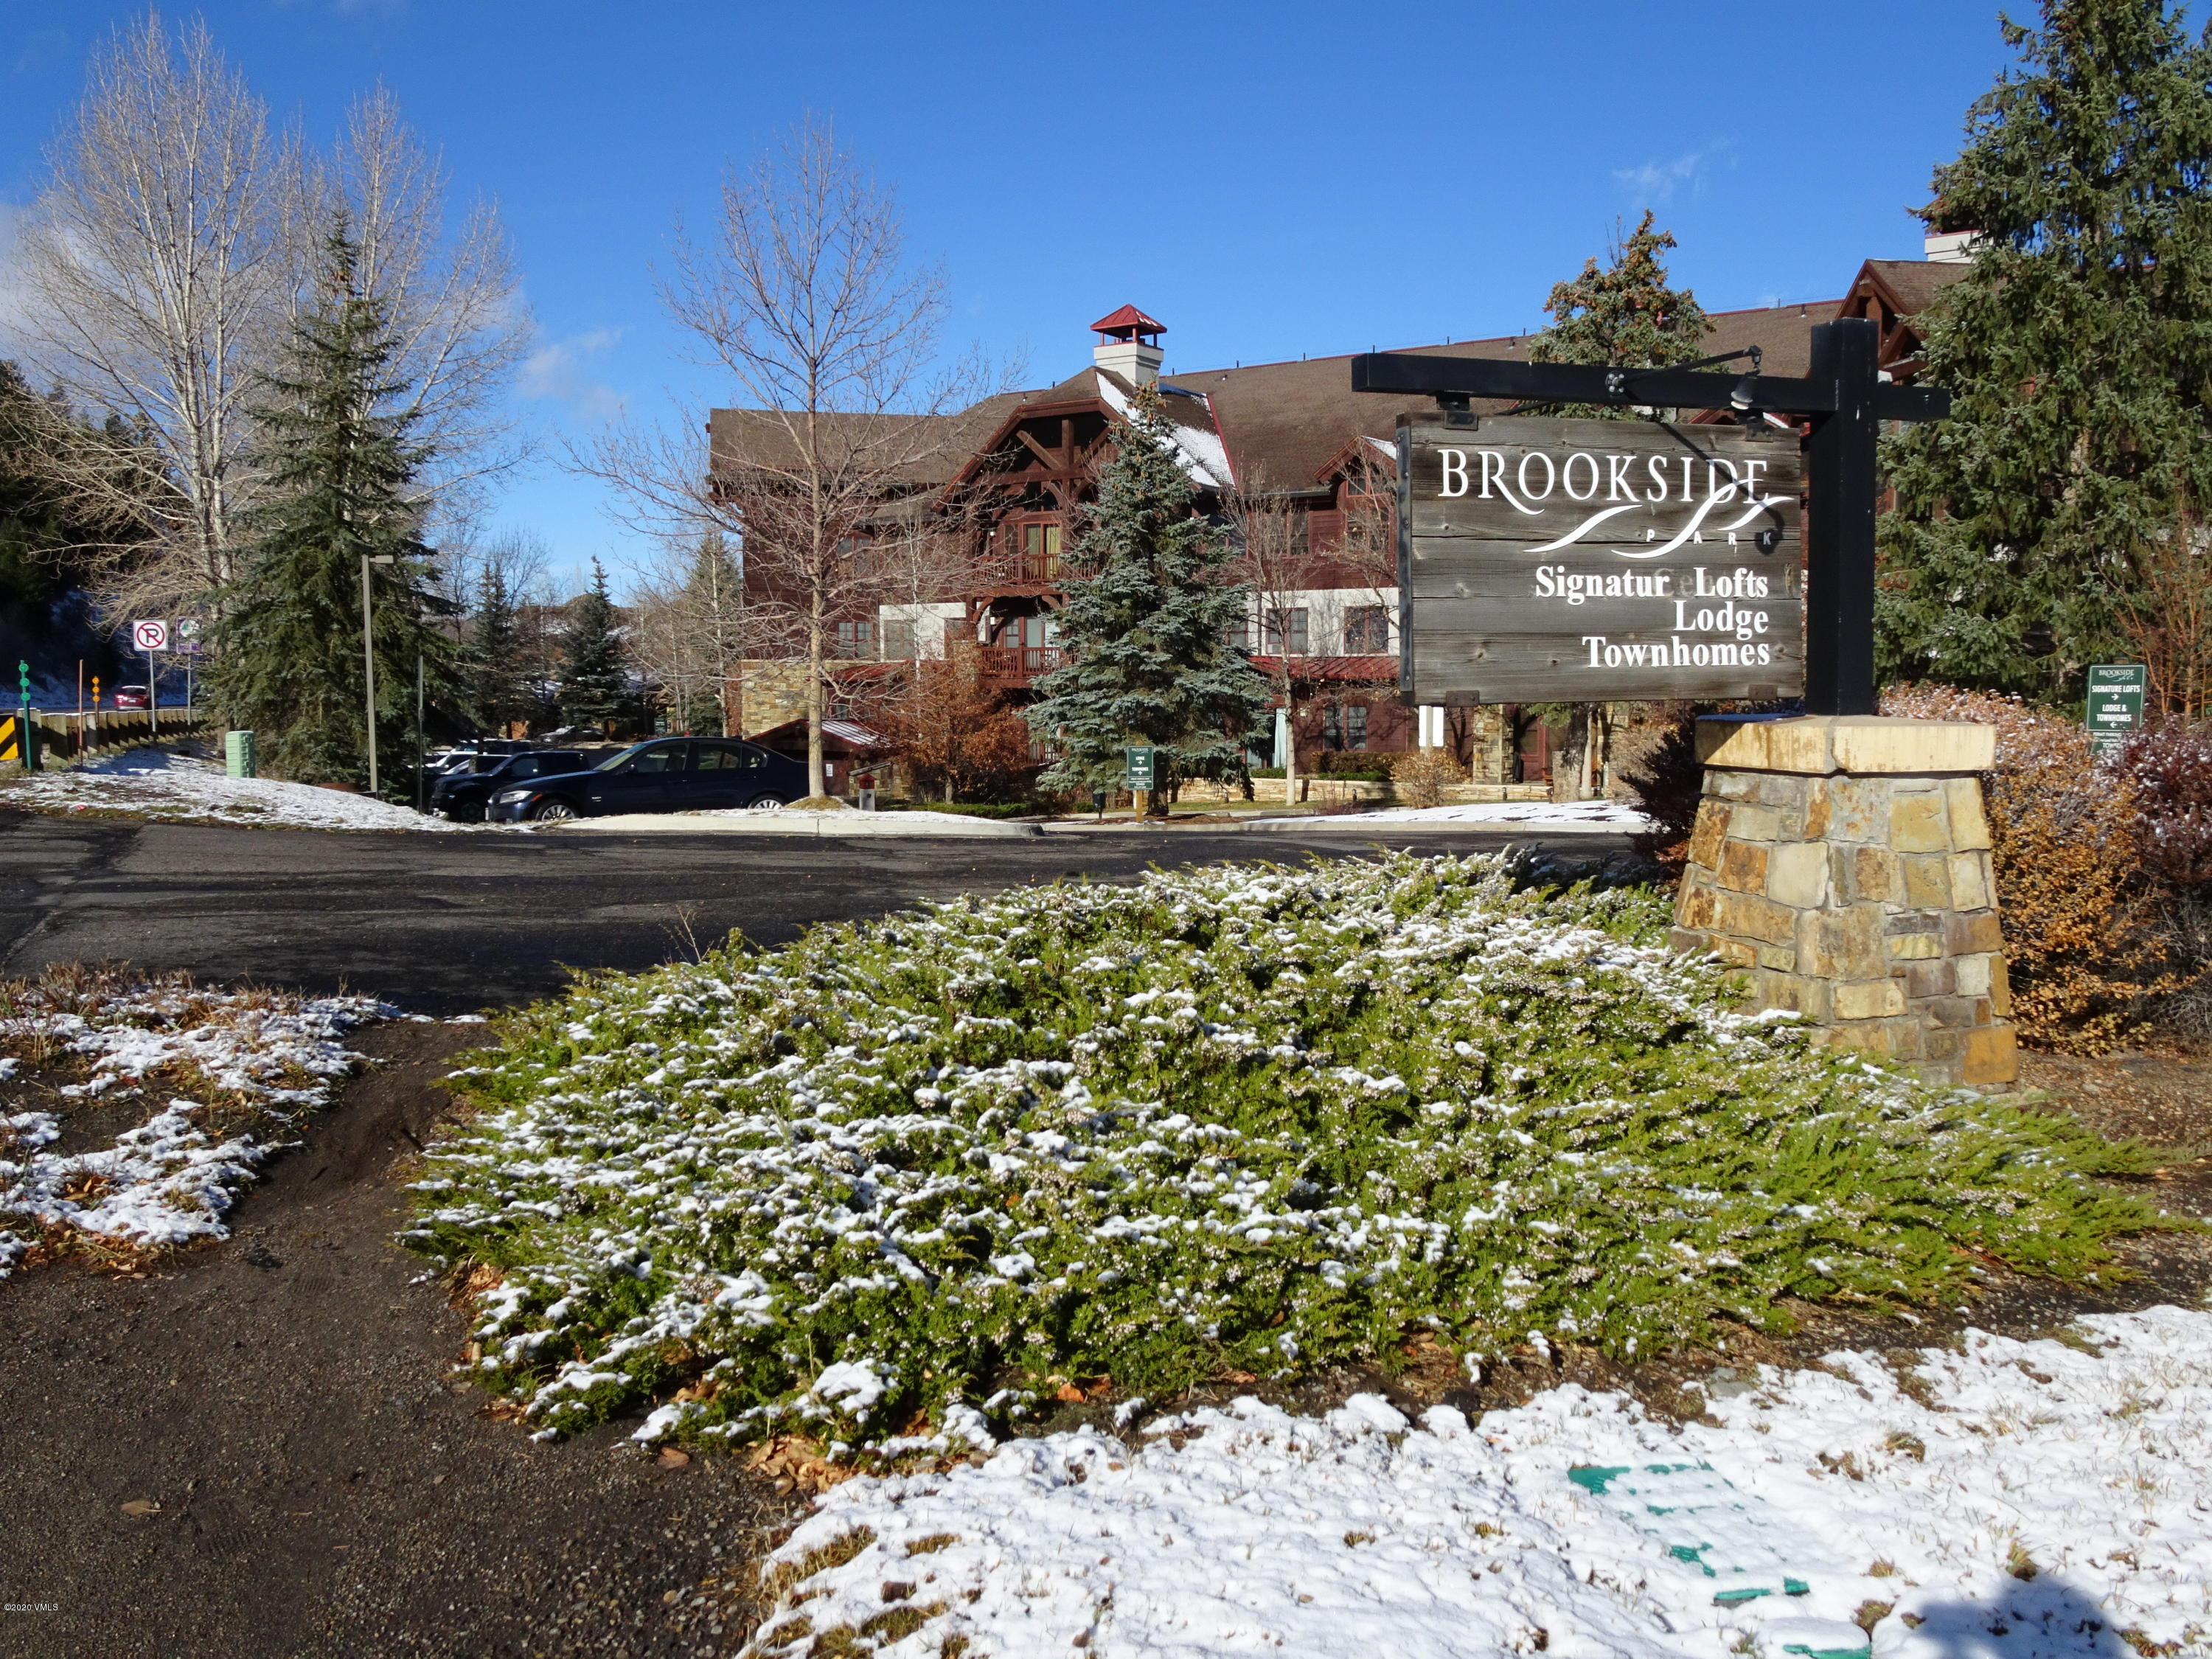 Located just across the street from the Bear Lot and the skier shuttle stop at the base of Beaver Creek Mountain, this 2 bedroom 3 bath Lodge At Brookside condo is ideal for those looking for the flexibility of having not only a permanent residence, but also an investment property that allows for short term and long term rentals. Enjoy the convenience of having a recently remodeled condo that's just a short walk to the Eagle River and the Eagle River trail system, and the many outdoors activities associated with living in the heart of the Vail Valley. With its scenic location alongside the Eagle River, it offers easy access to skiing, golf, shopping, dining and Nottingham Park. Recent upgrades to this second floor condo include wood floors and trim, new kitchen appliances, washer and dryer, window shades and a fresh coat of paint. After a day on the slopes, stow your gear in your private ski locker or in your private owner storage space and relax in the on site heated swimming pool and hot tub. A heated underground parking and work out facility round-off the wonderful amenities. Call today and schedule your private showing!